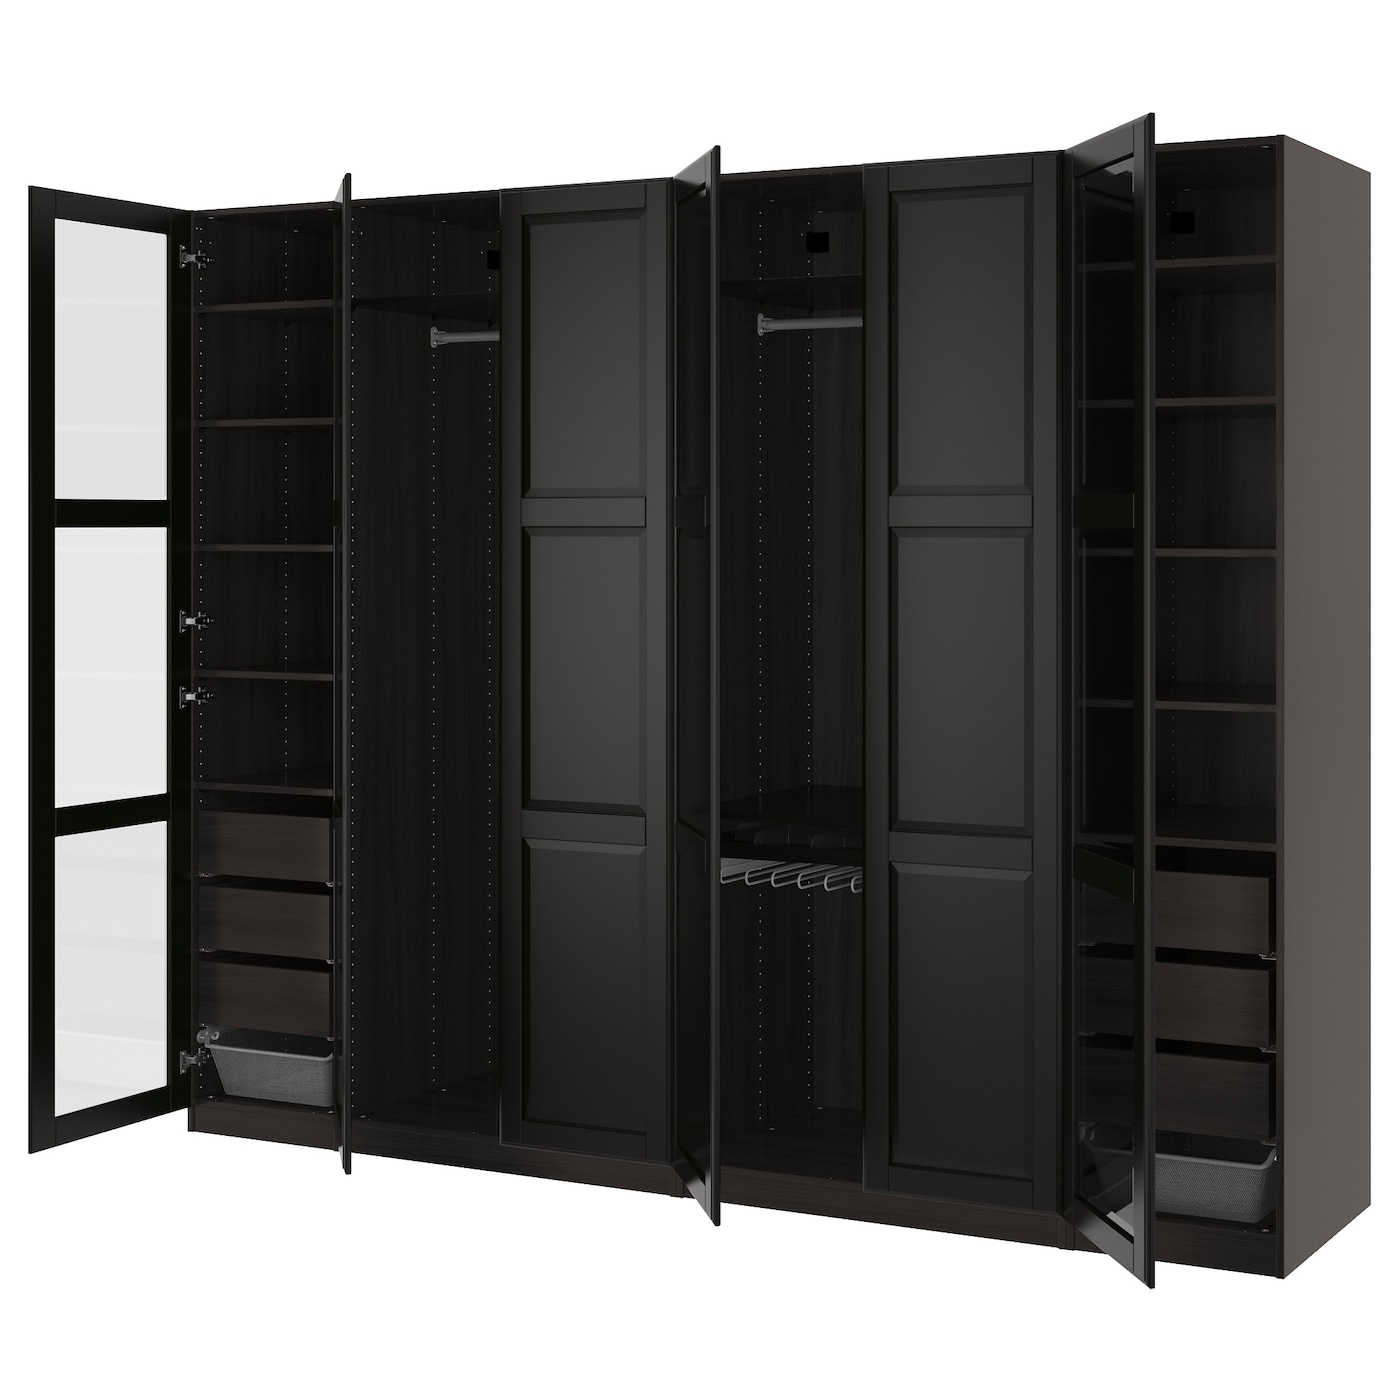 pax wardrobe black brown undredal undredal glass 300x60x236 cm ikea. Black Bedroom Furniture Sets. Home Design Ideas